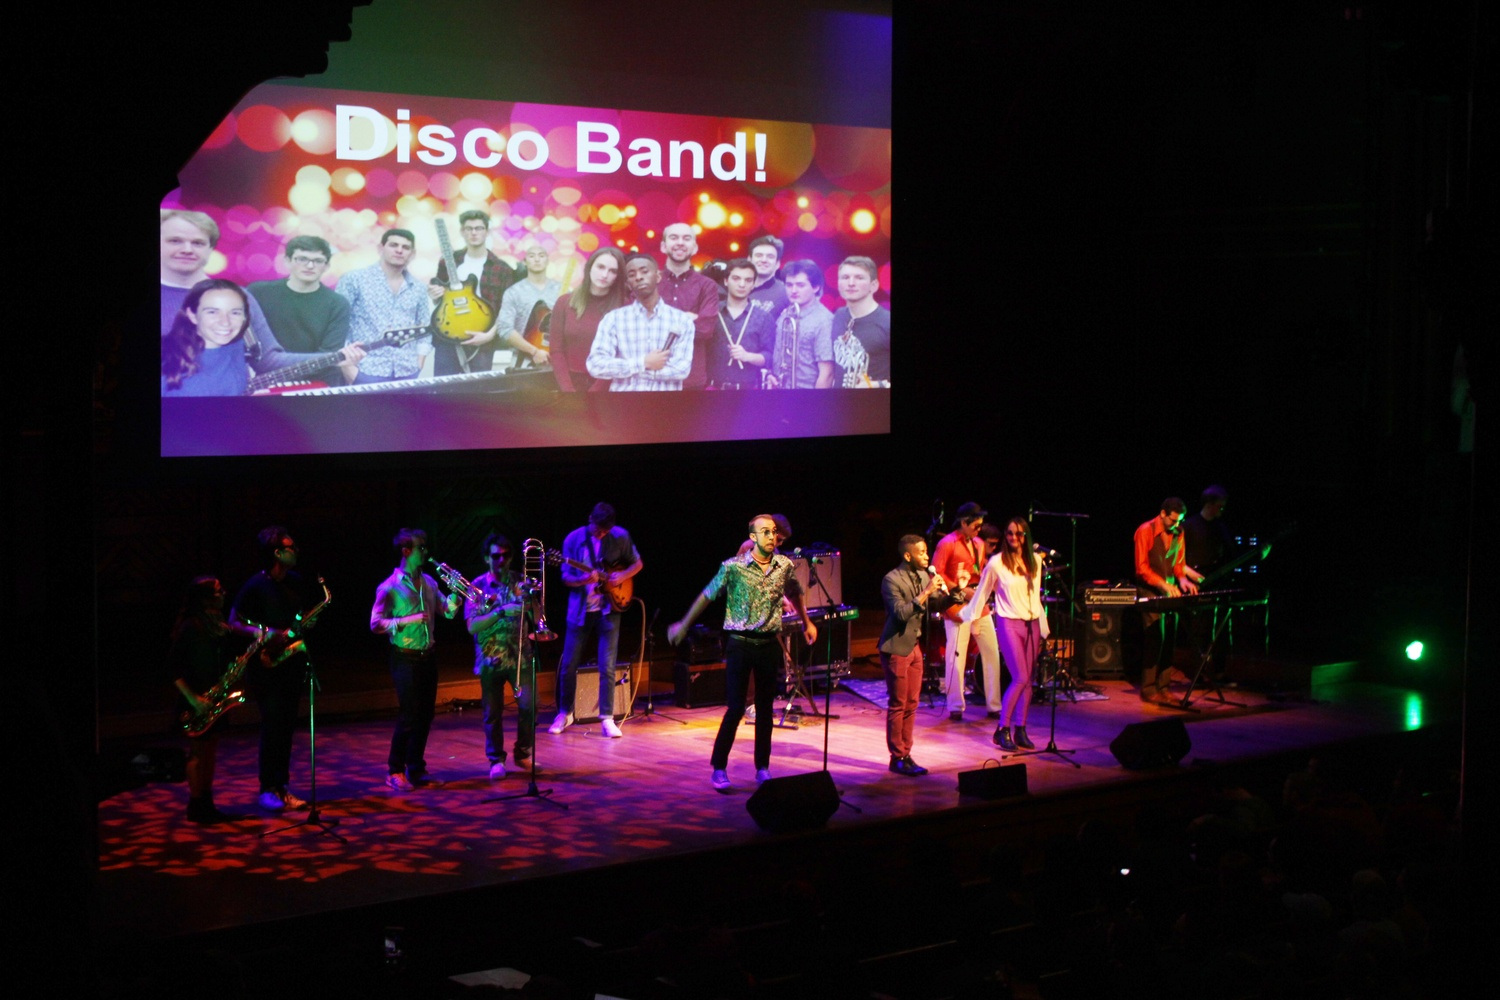 Disco Band! won a spot as an opening act at Yardfest after performing at the Battle for Yardfest on Thursday night.